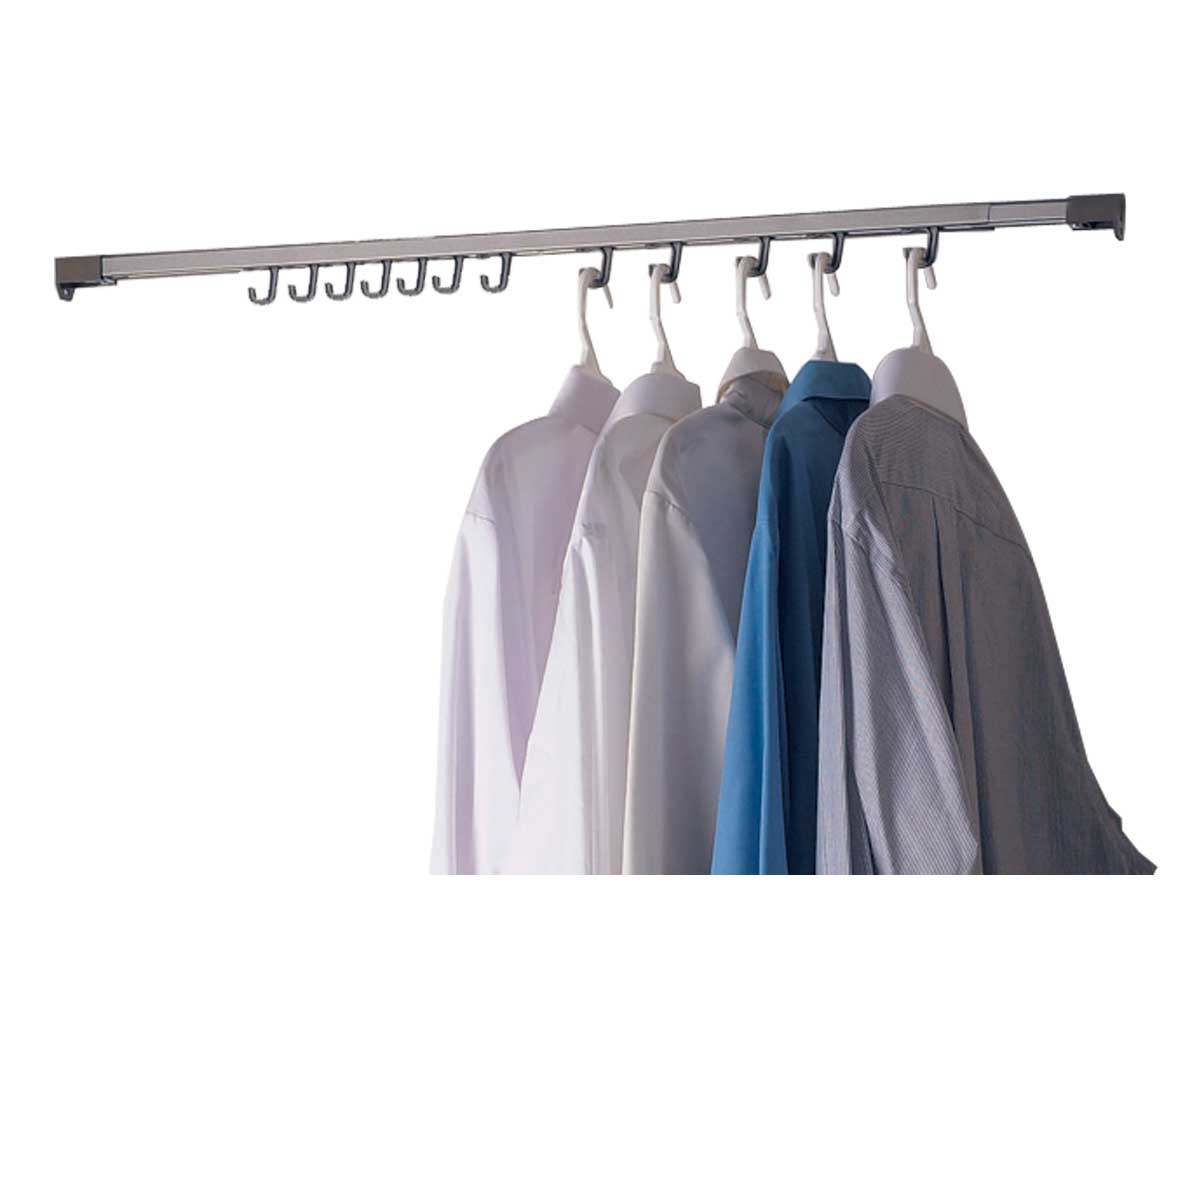 RENOVATOR'S SUPPLY Closet Organizer Chrome (Grey) 48' to 80' Expandable